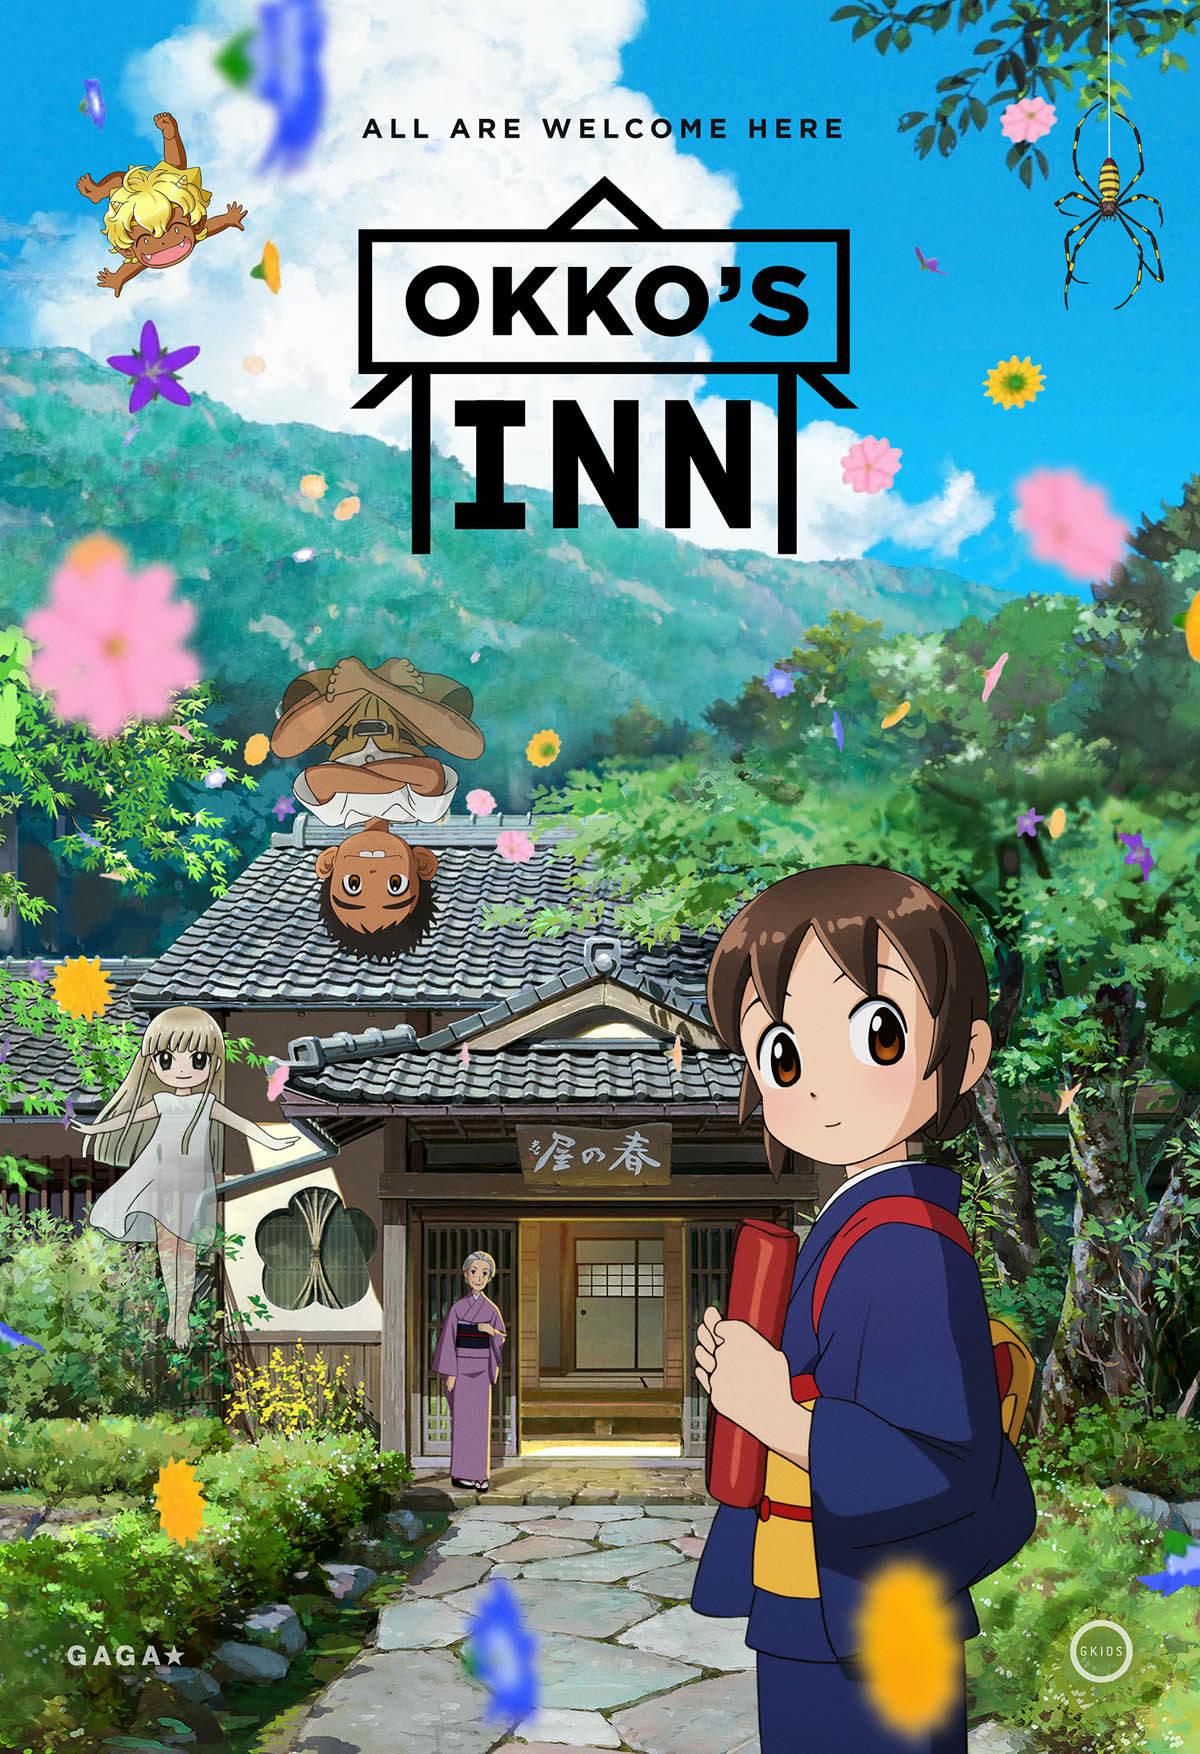 animation film okkos inn